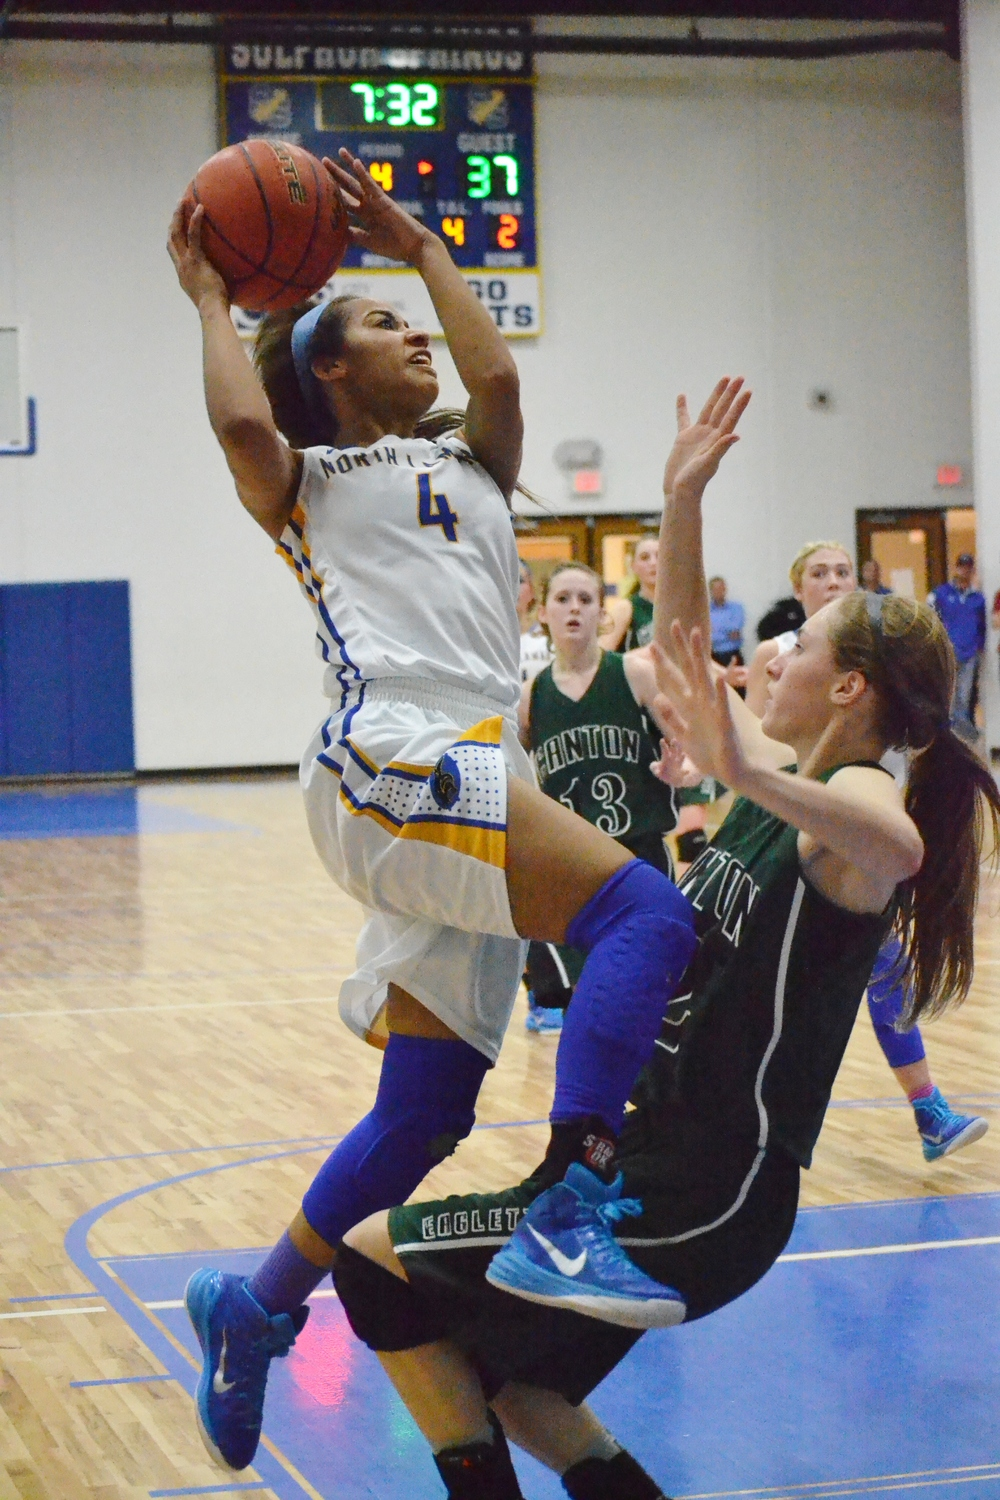 (Photo by Bev White) Aaryn Honeywood driving for a layup against Canton.